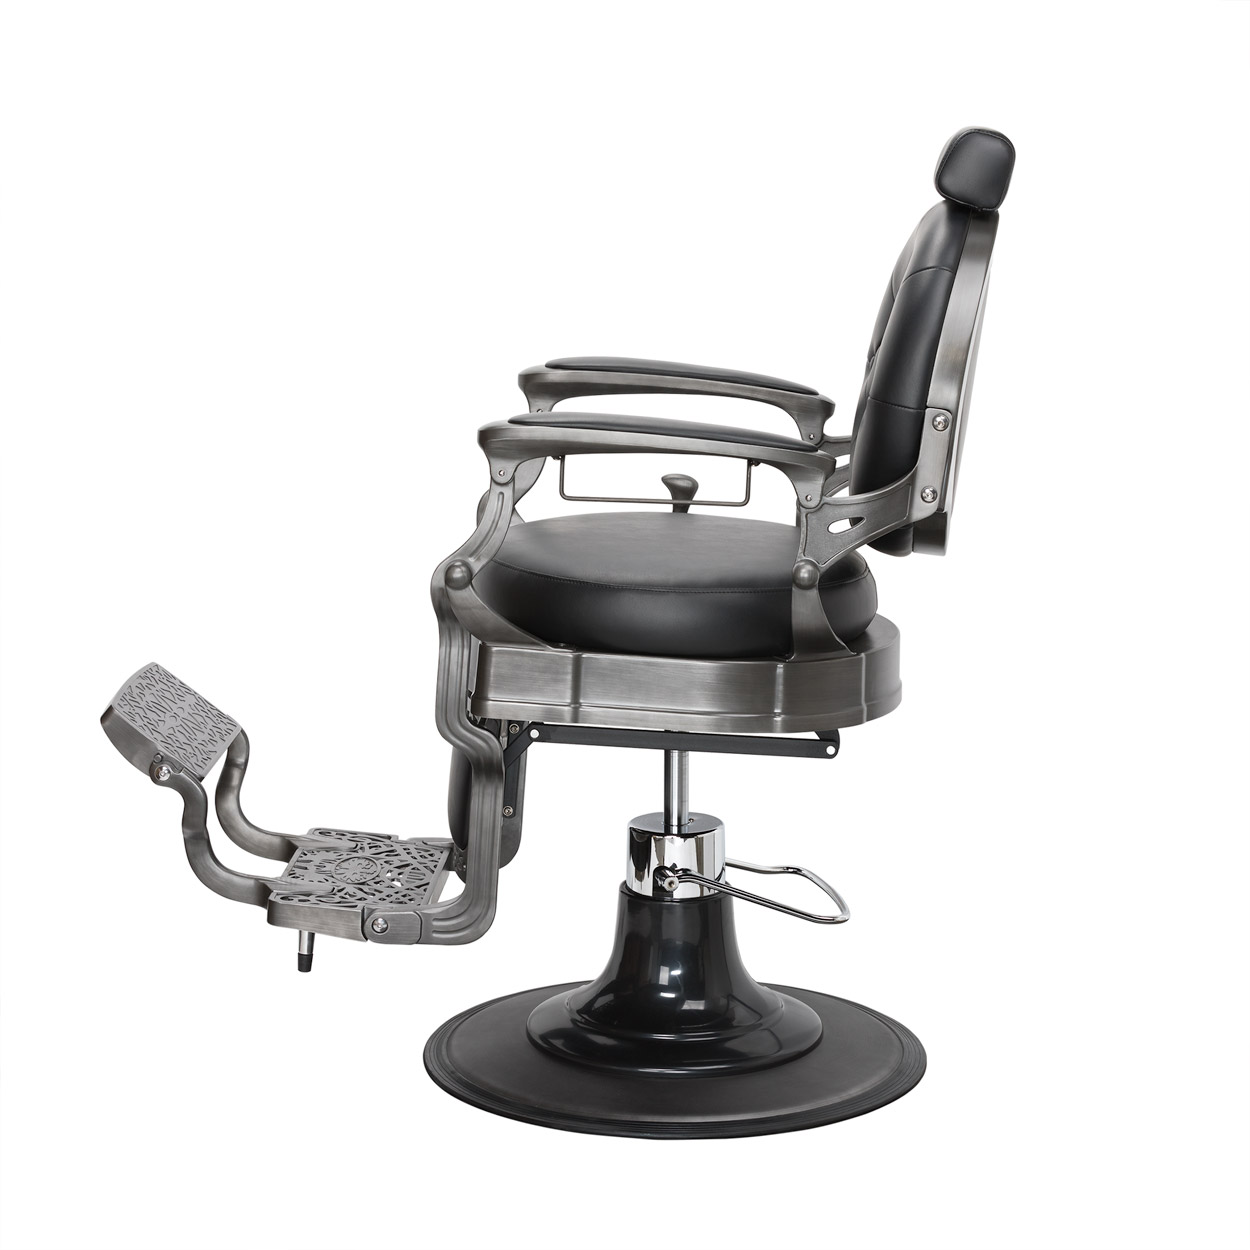 Wexford Vintage Barber Chair - Gun Metal Finish alternative product image 1